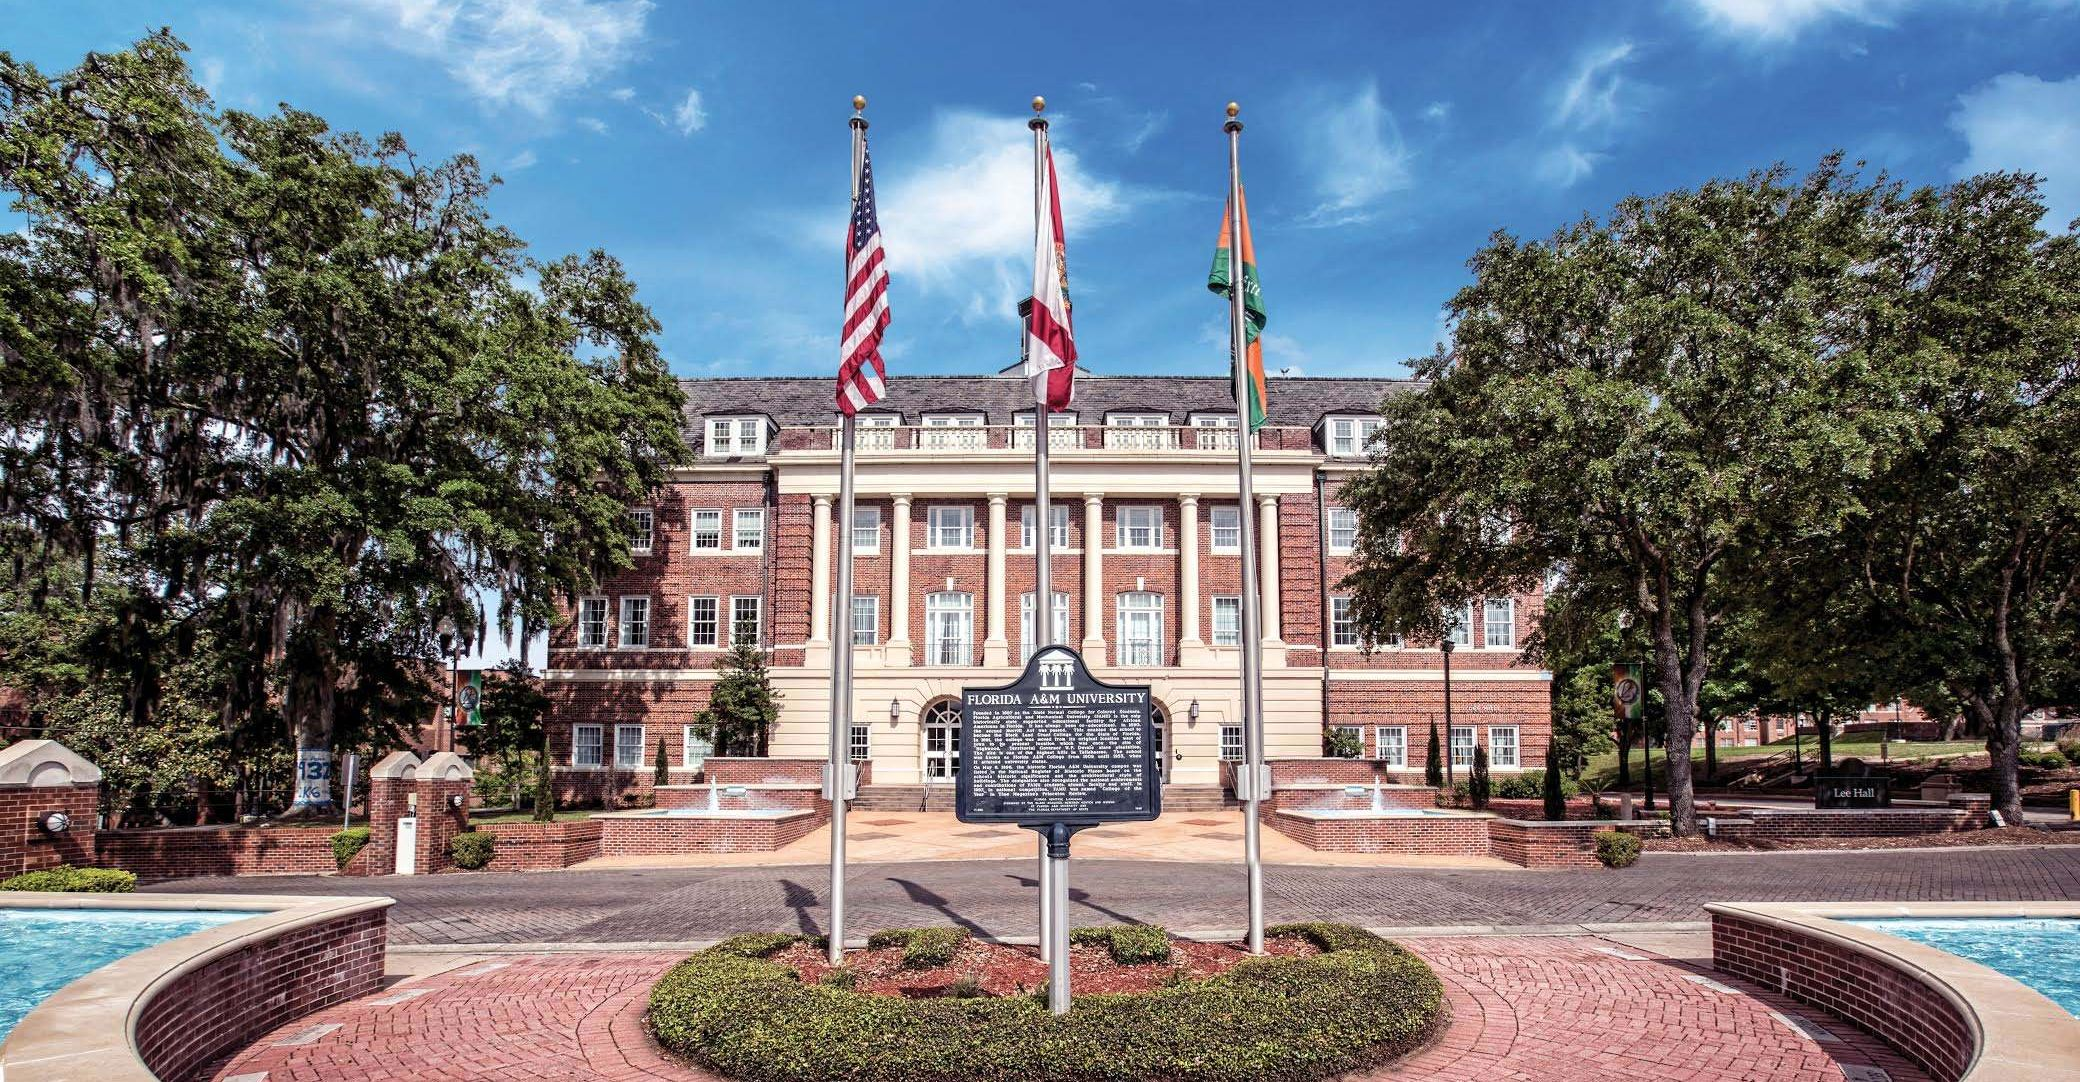 Florida A&M University Revenue Bond Programs - photo 1